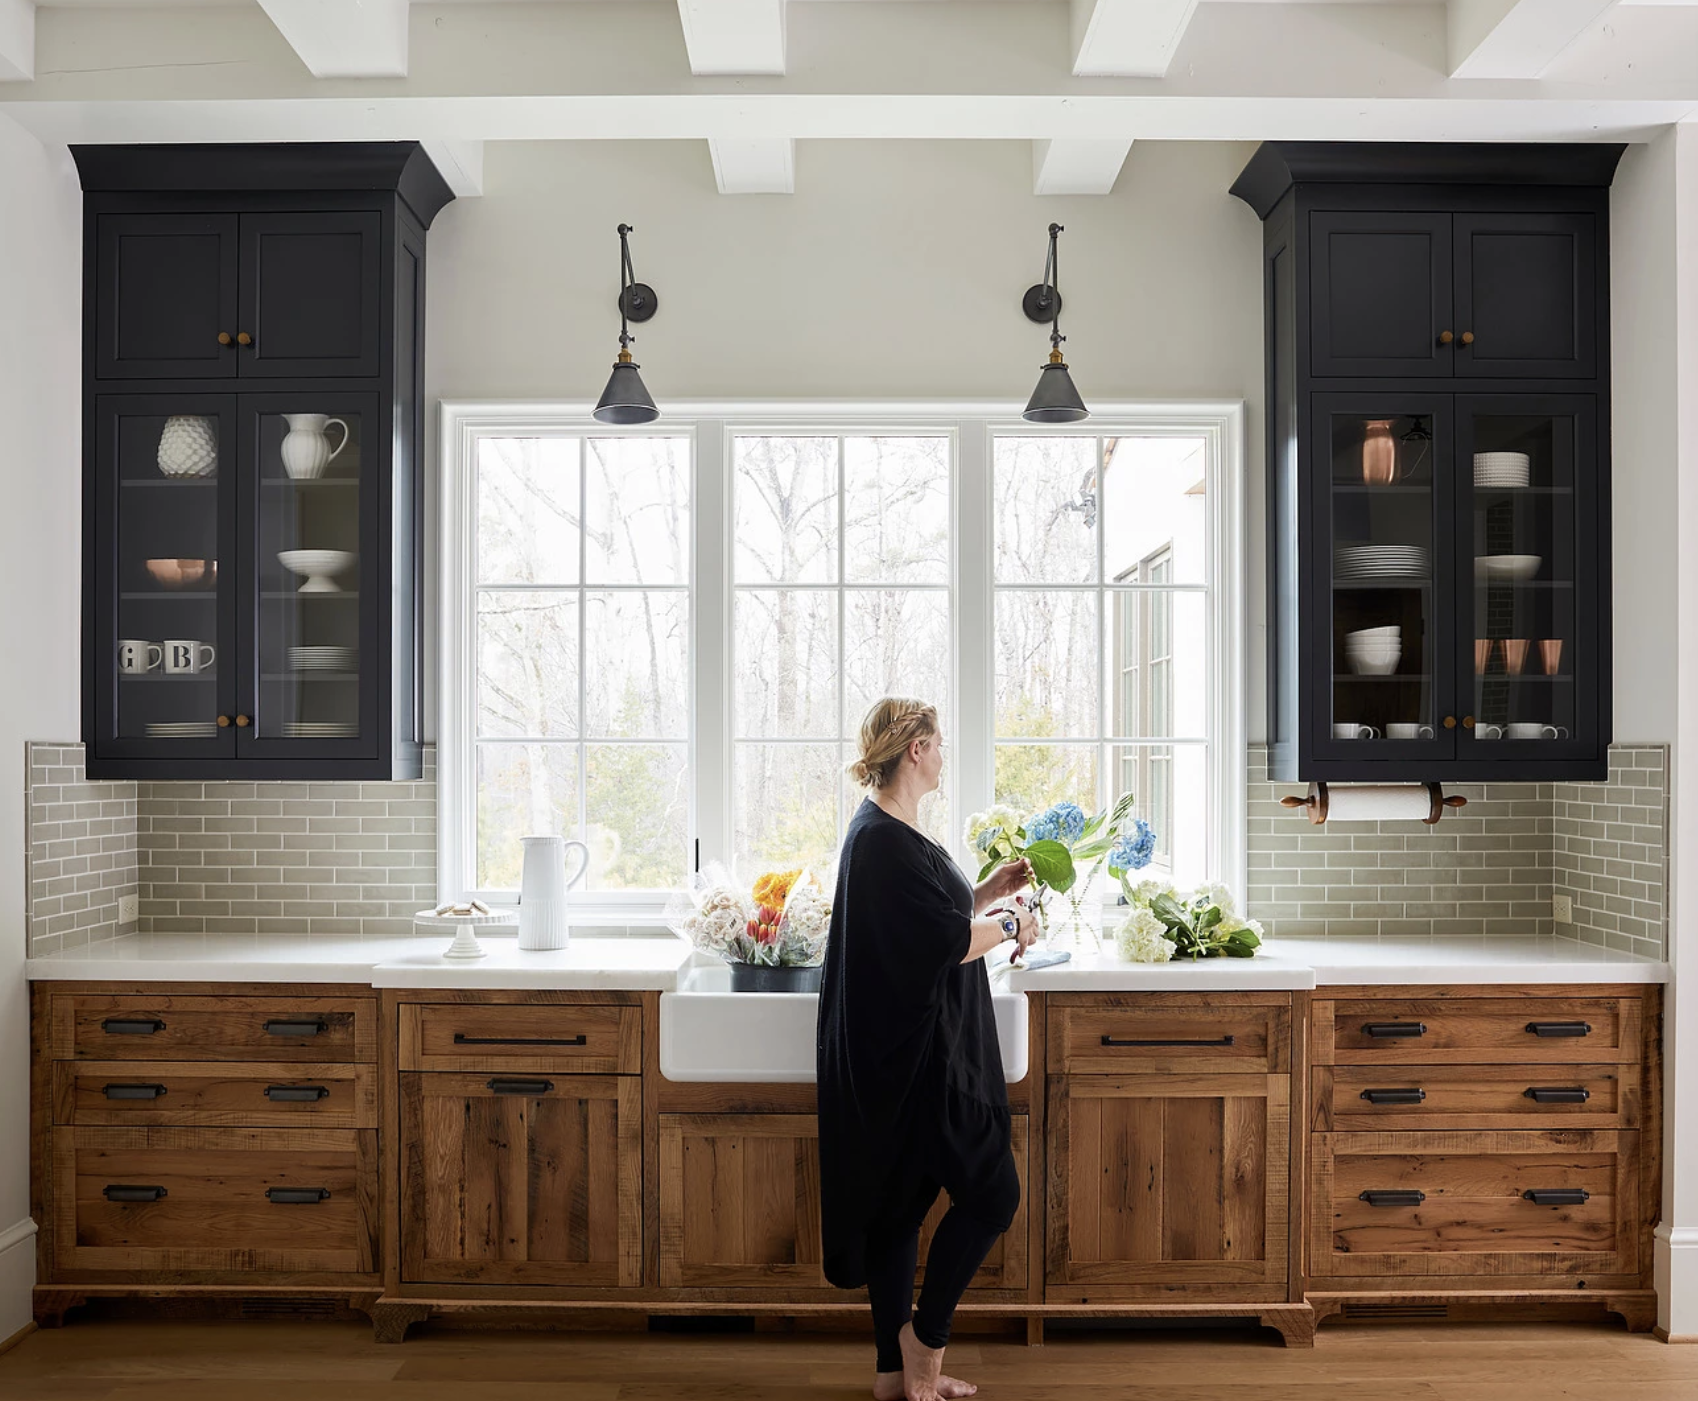 Introducing 10 Black Kitchen Cabinet Ideas That Are Oh So Decadent Hunker Rustic Kitchen Cabinets Home Kitchens Farmhouse Style Kitchen